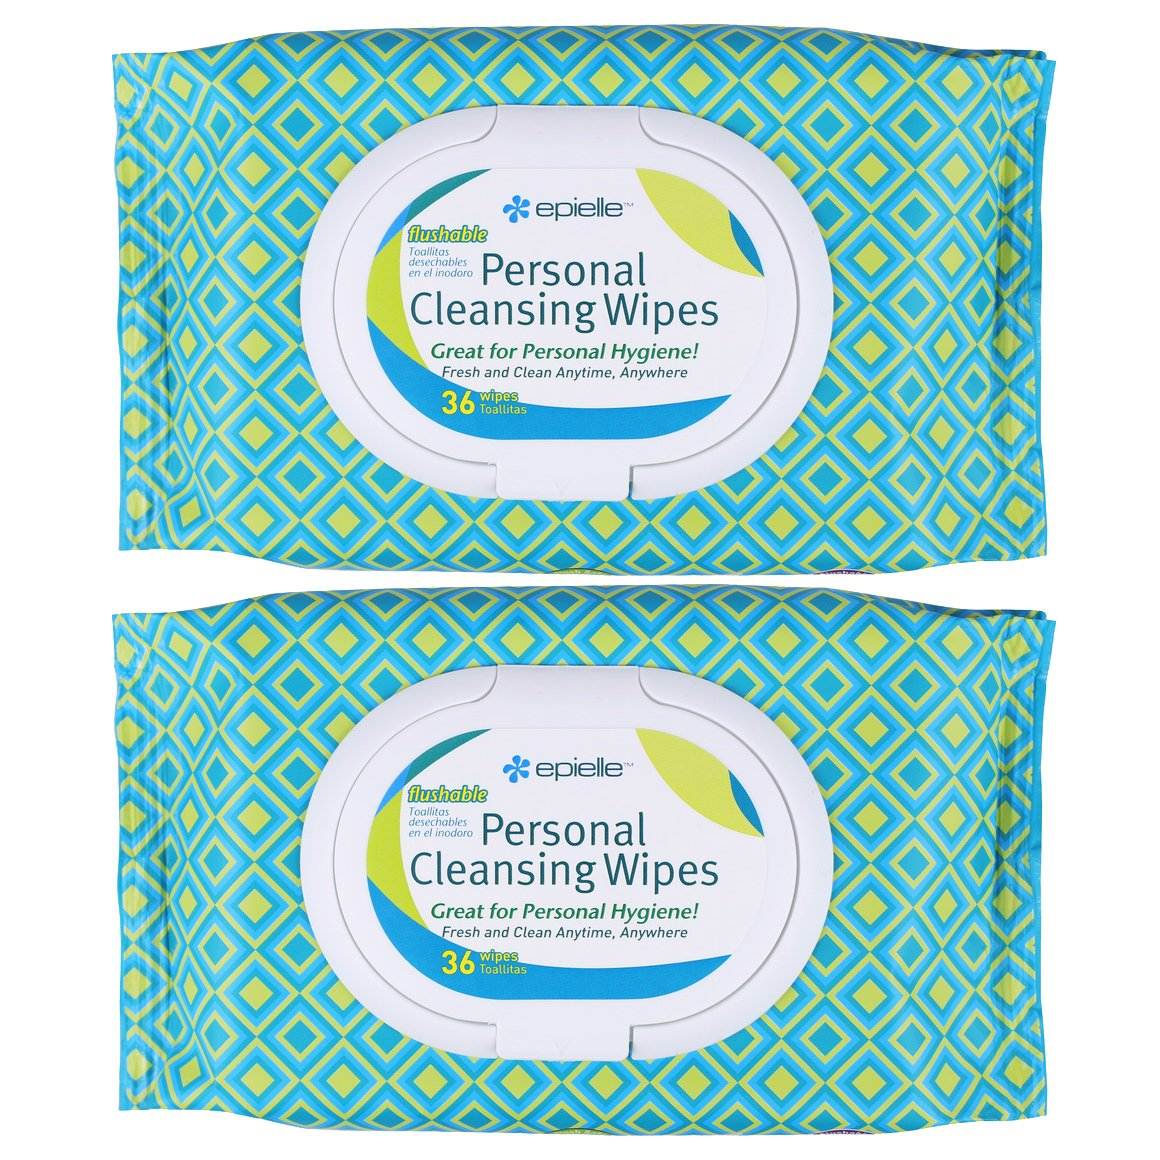 Amazon.com: Epielle Personal Cleansing Wipes-36ct (2 Pack): Health & Personal Care